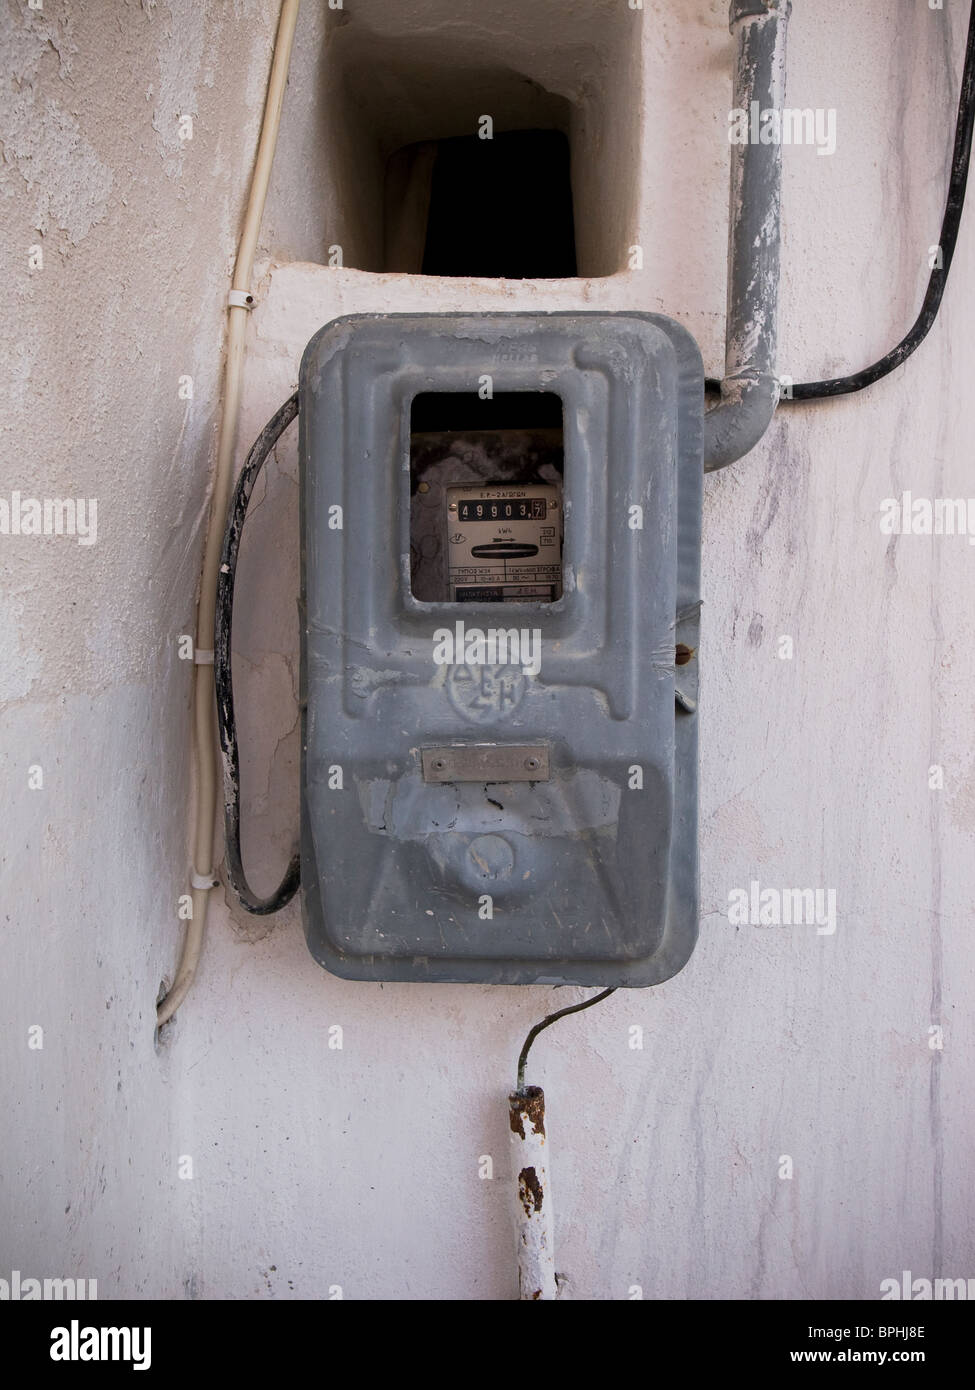 Electricity meter on wall in Greece - Stock Image